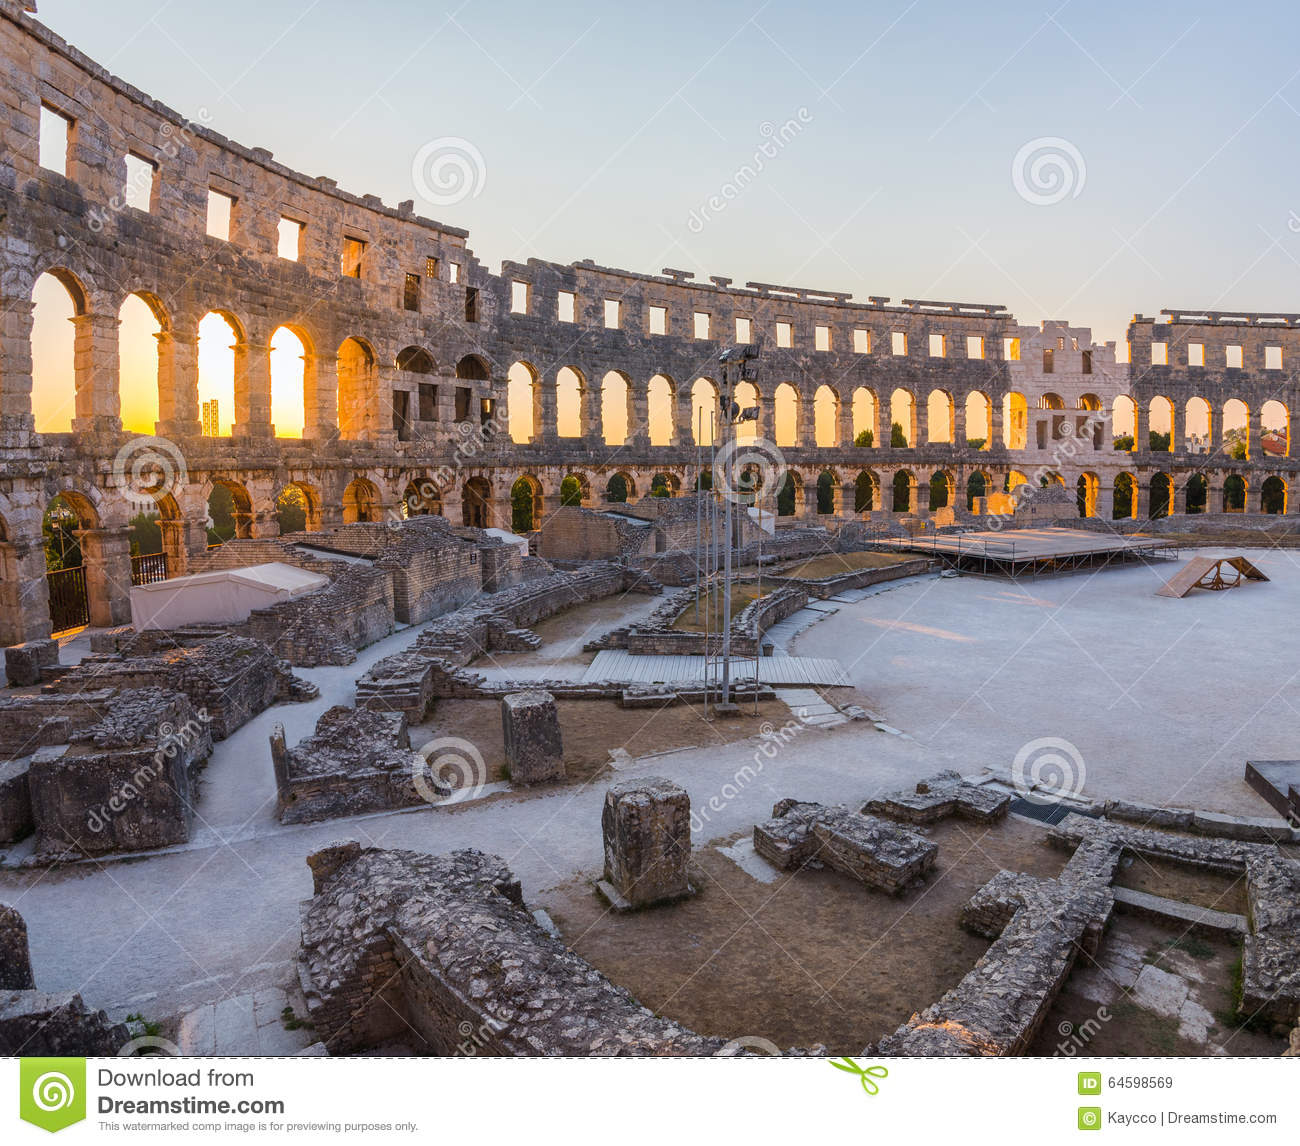 Street Lights 1143625 further Roman Colosseum Watercolor Imitating Painted Sketch 414825775 furthermore 159948224245151527 moreover Board in addition 296674694173995296. on roman coliseum architectural plan